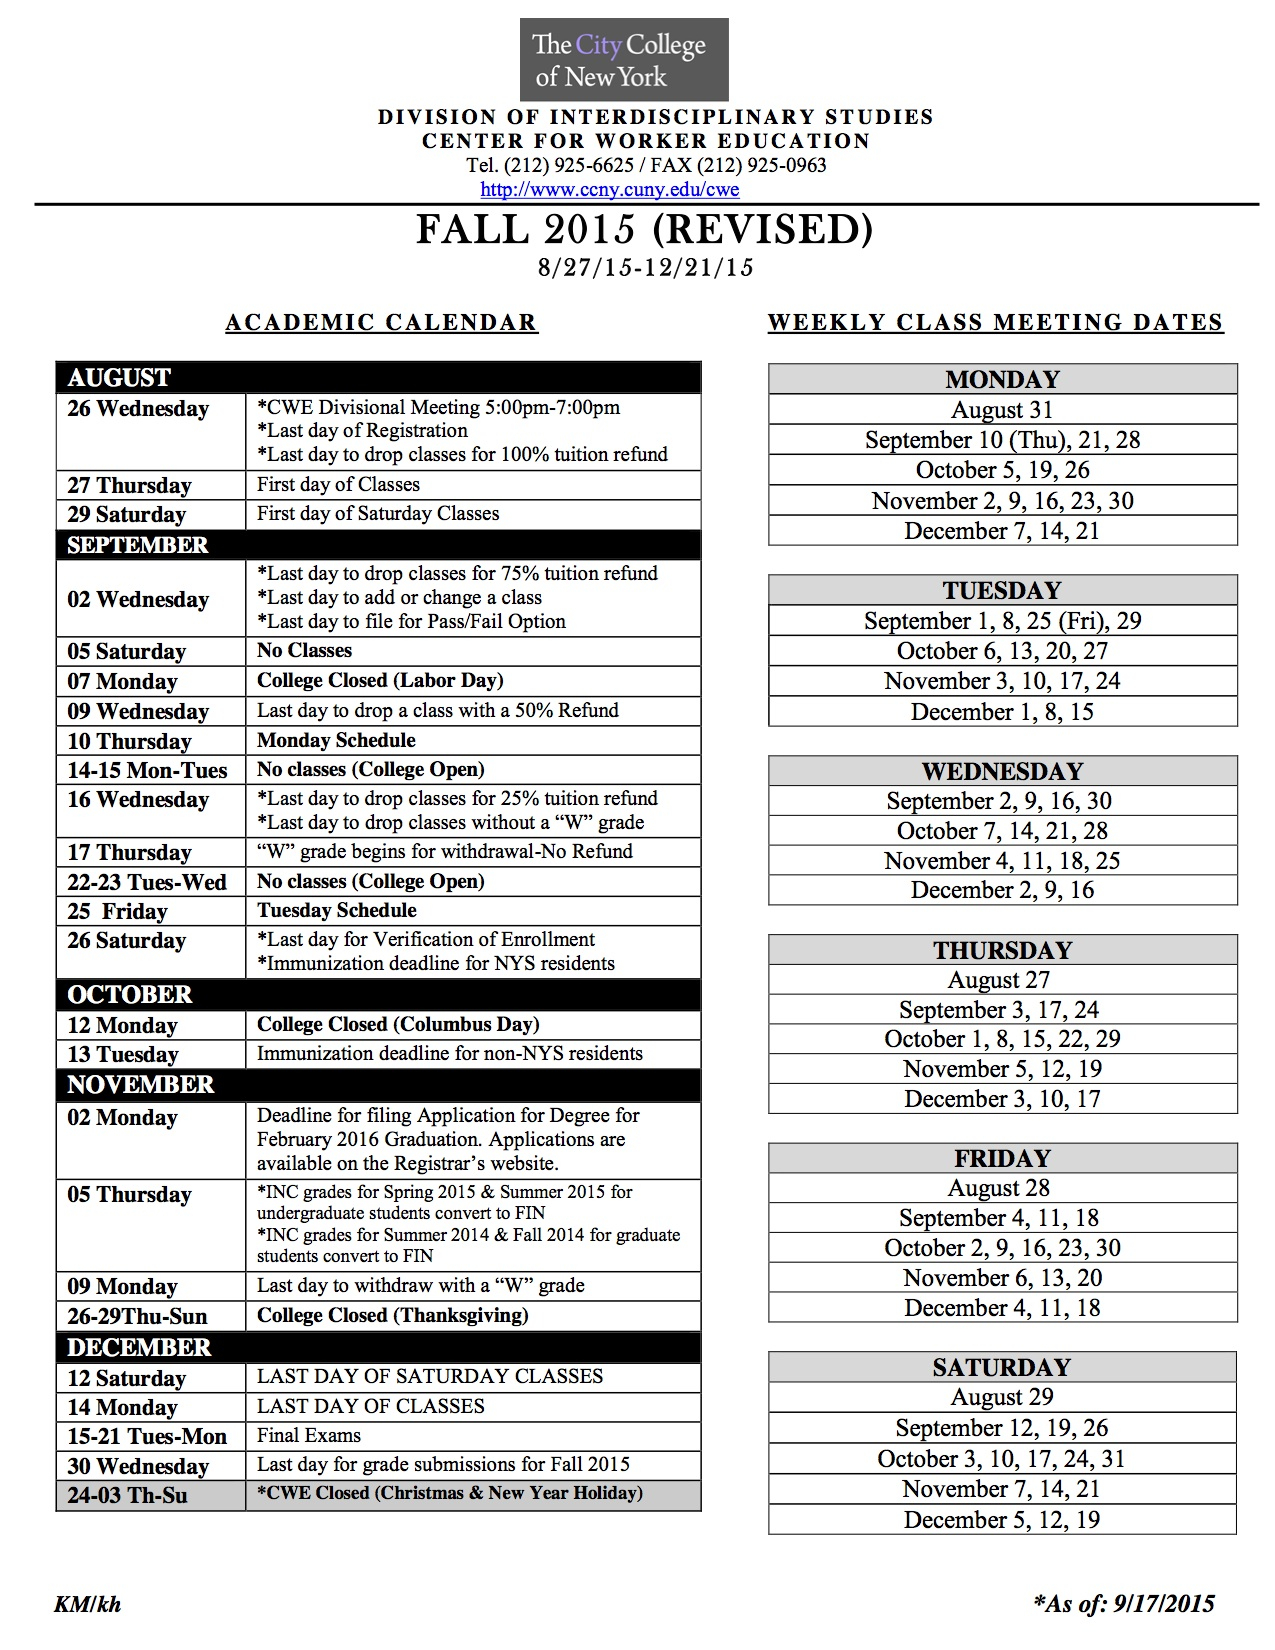 Academic Calendar | The City College Of New York Within Queensborugh Commuity College Calendar